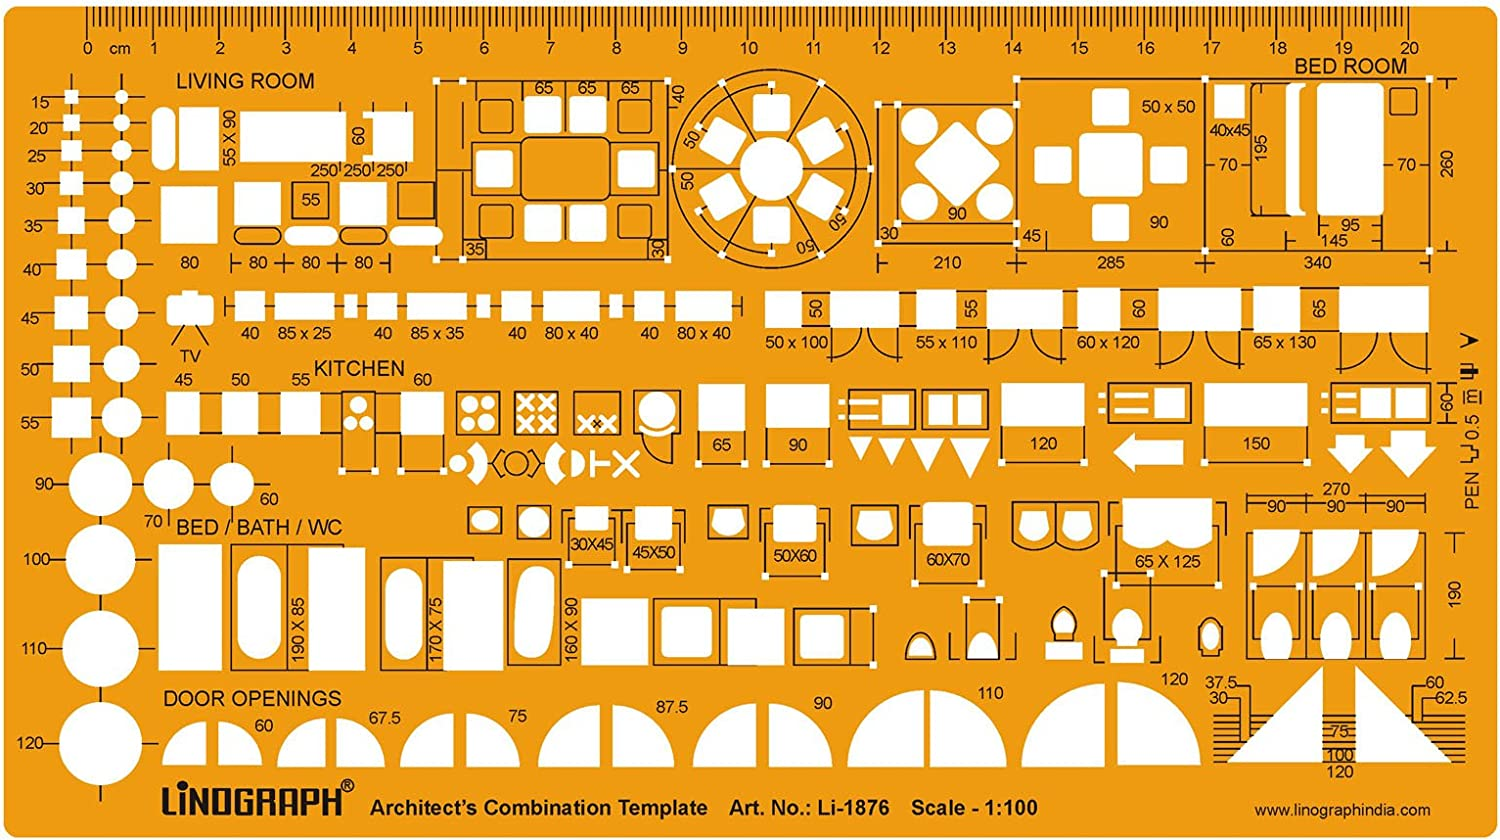 Metric 1:100 Scale Architect Design Drawing Template Stencil- Furniture Layout Symbols for House Interior Planning